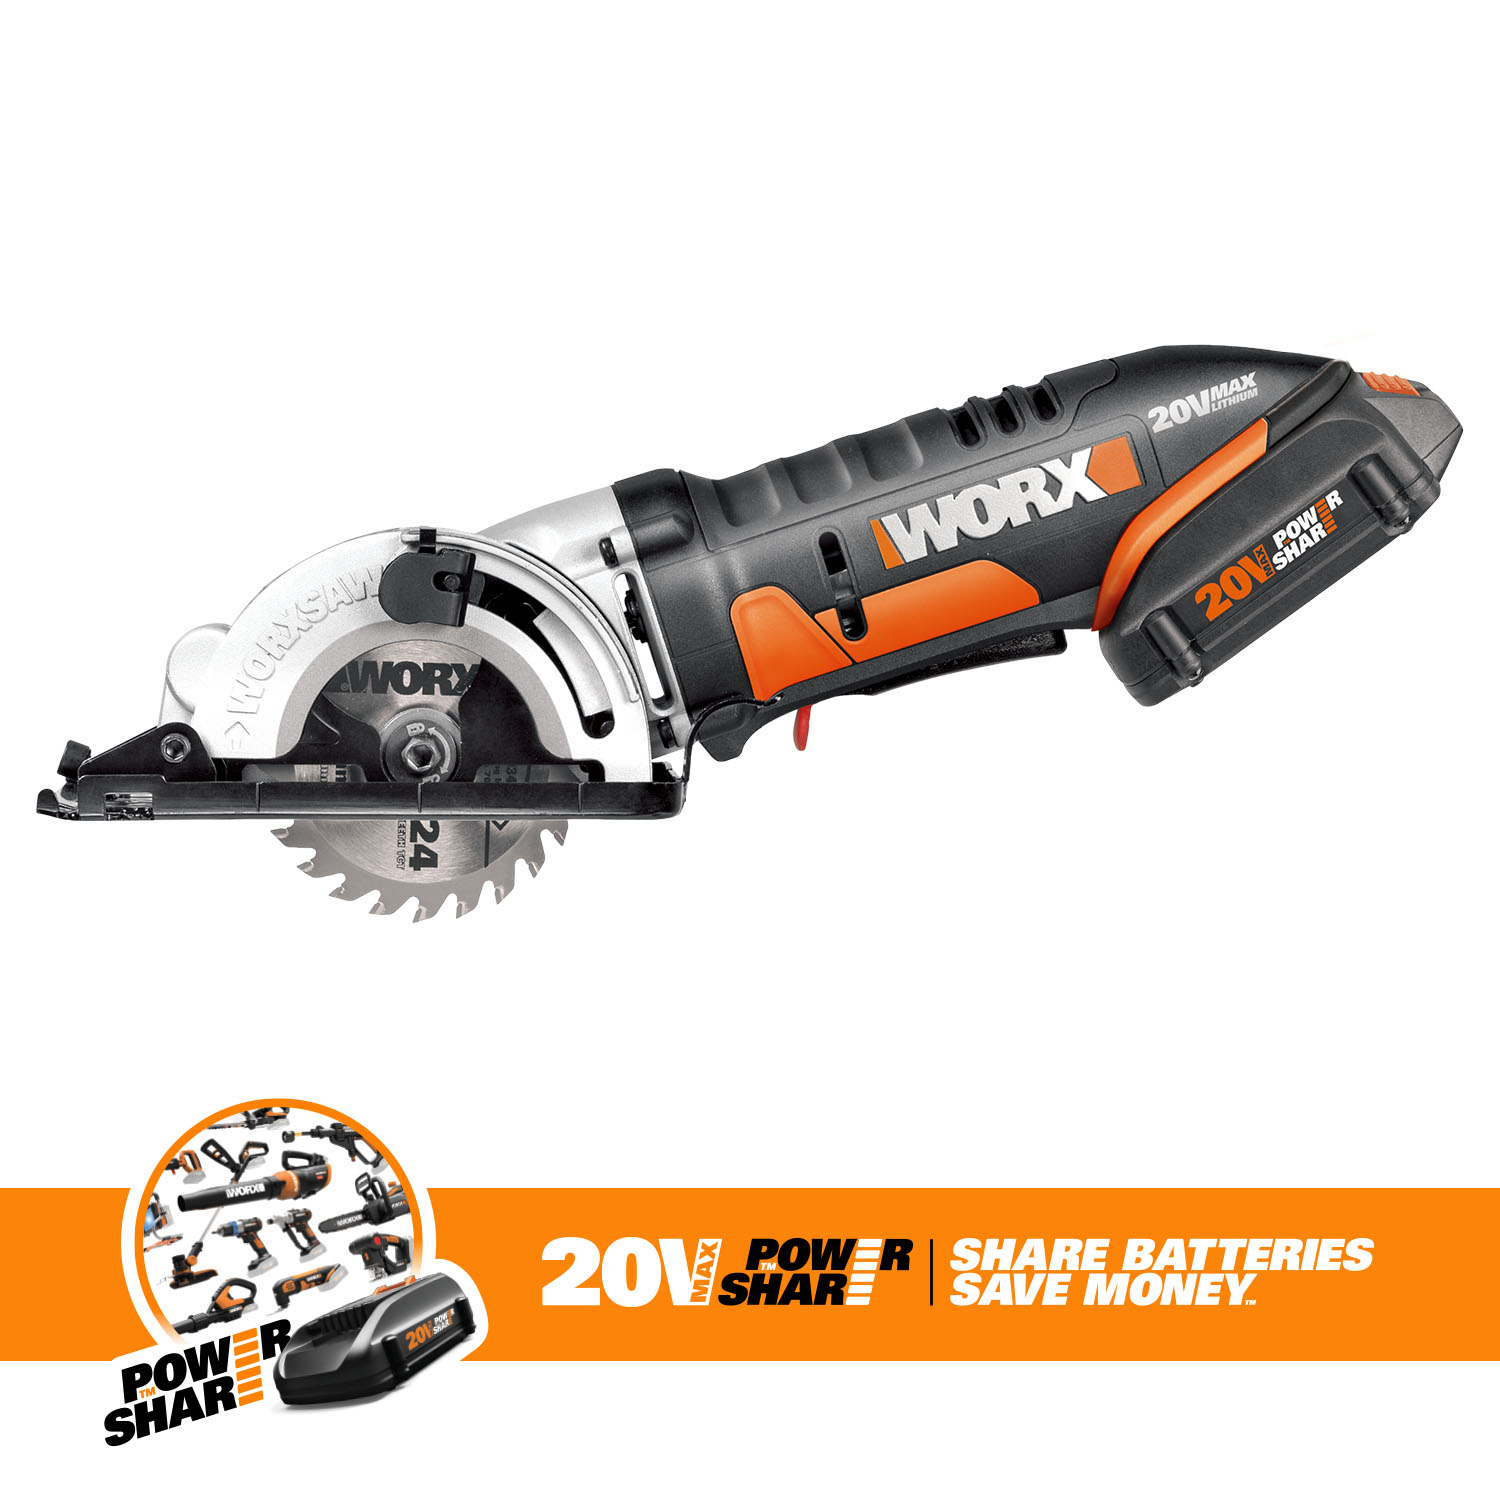 WORX WX523L 20V Cordless Circular Saw with 3 3 8� Blade by Positec Technology